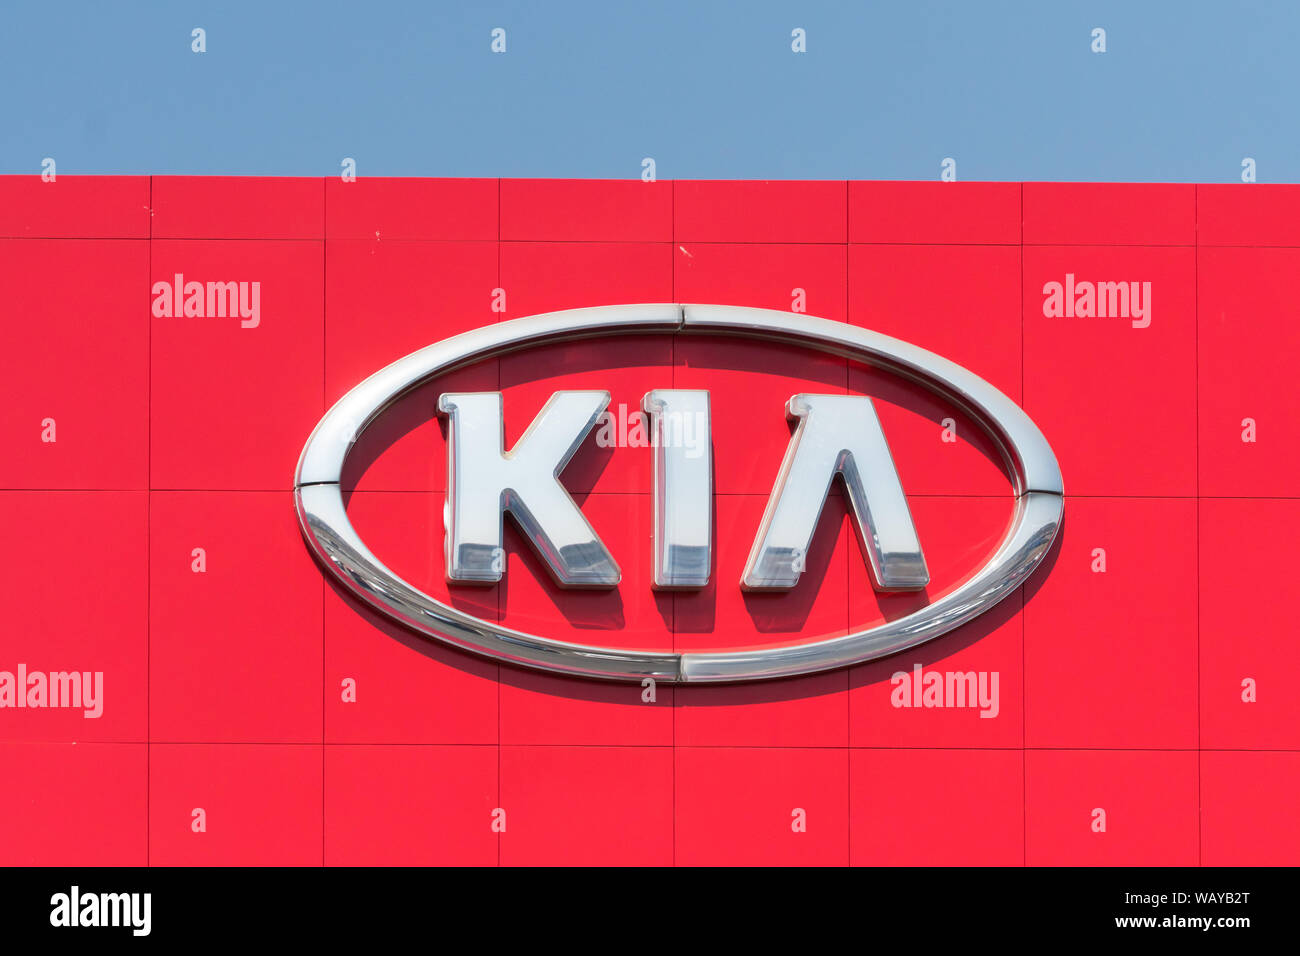 KIA silver sign or signage emblem logo against a bright red facade of a building in Johannesburg, Gauteng, South Africa Stock Photo